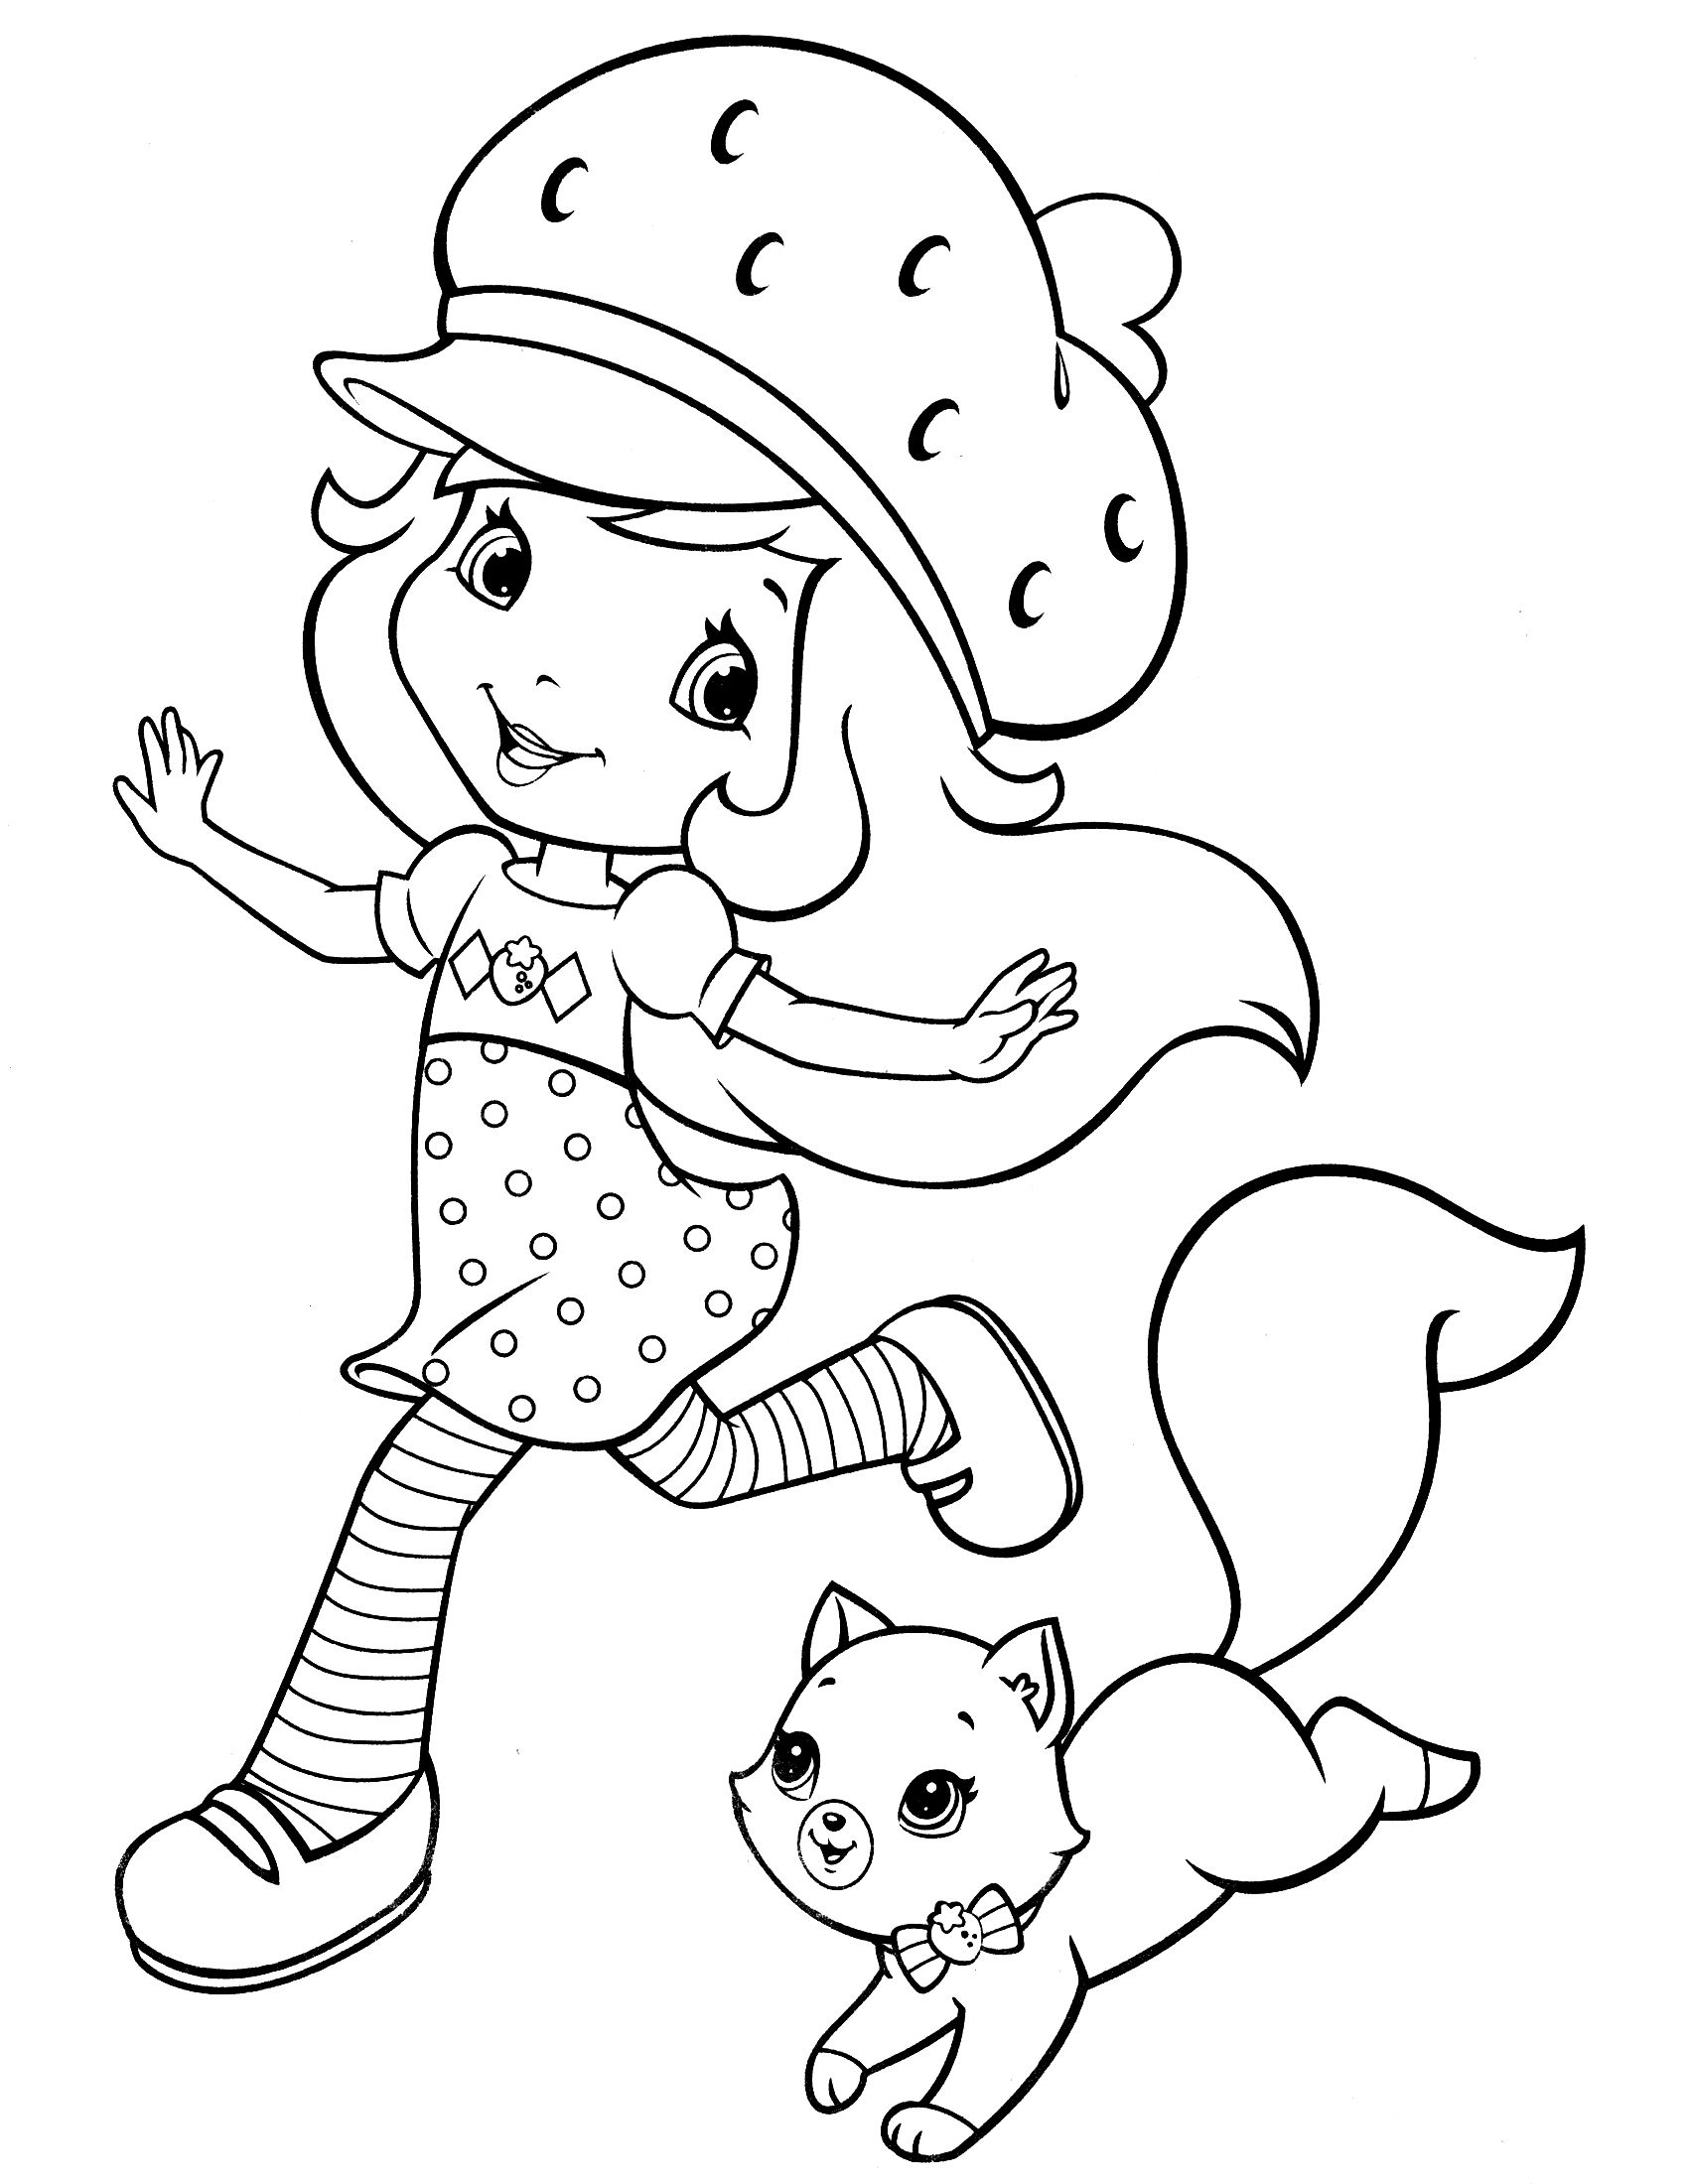 Printable coloring pages strawberry shortcake - Coloring Pages